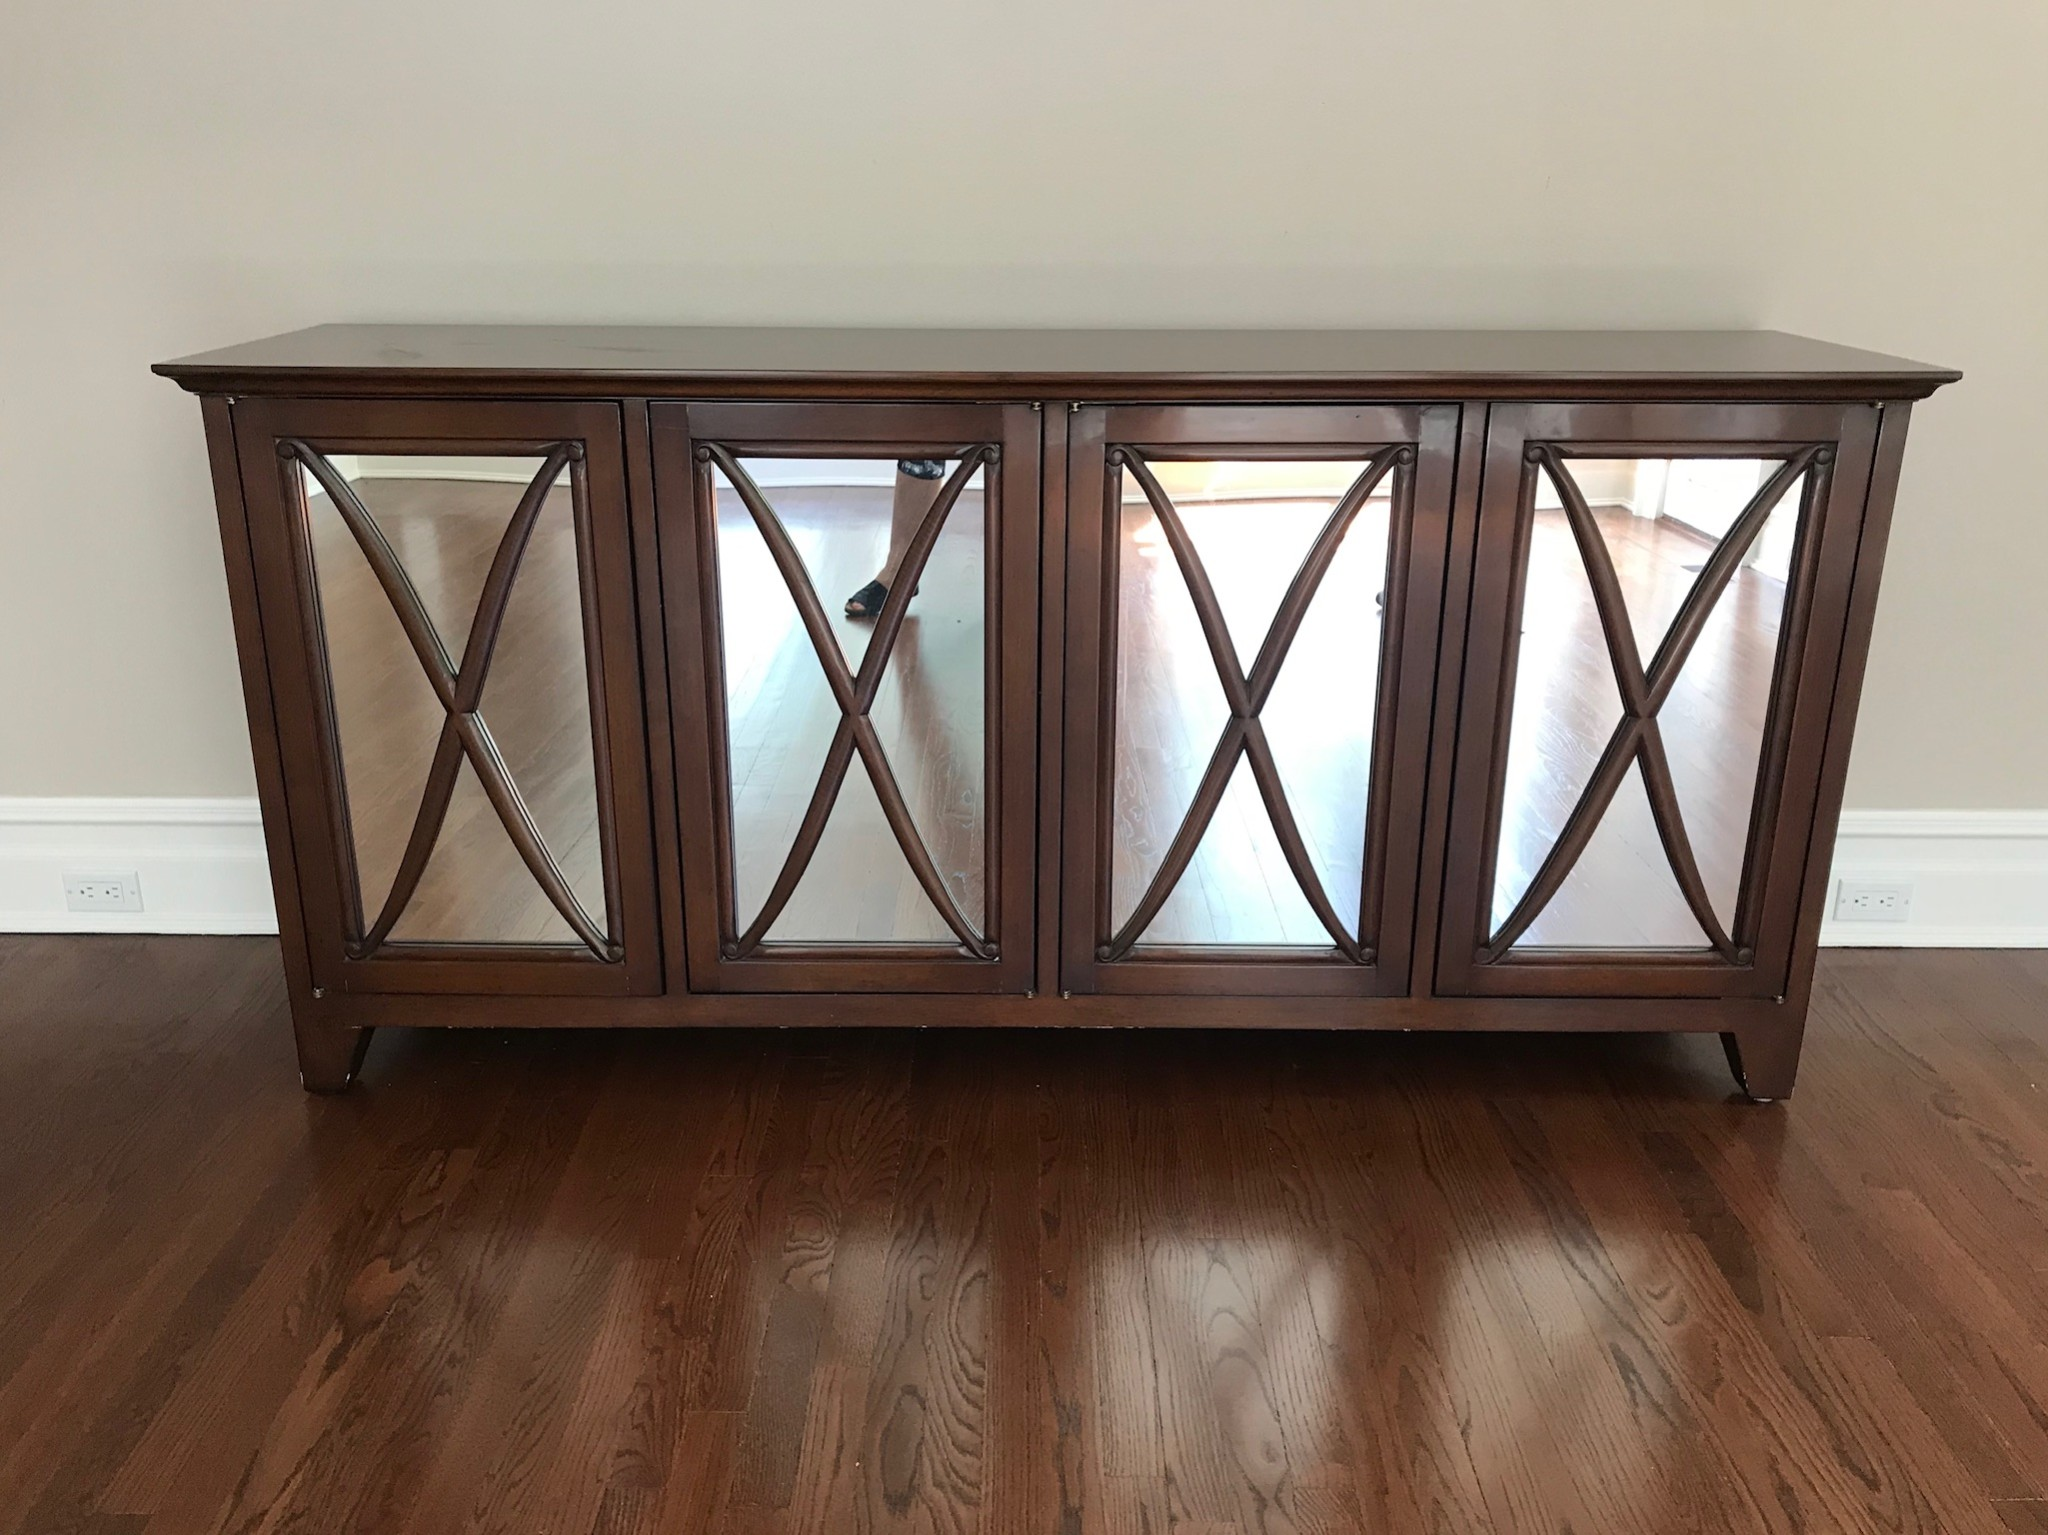 Lovely Mirrored Nancy Corzine Home Office Credenza or Consol